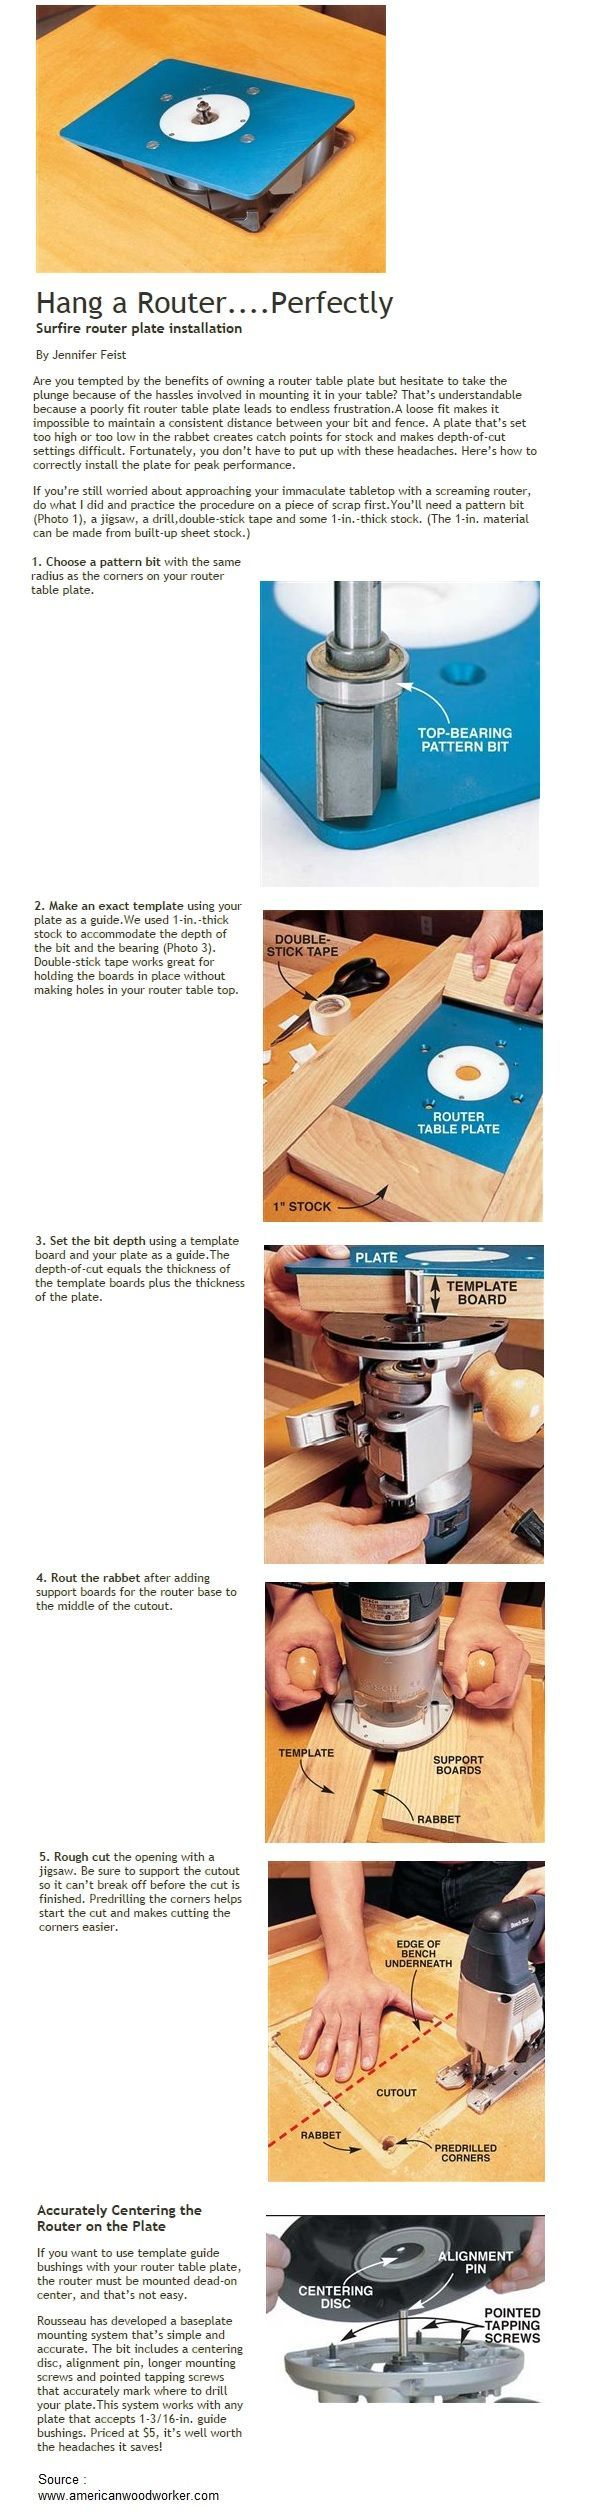 Hang a routerrfectly woodworking pinterest router table hang a router greentooth Choice Image